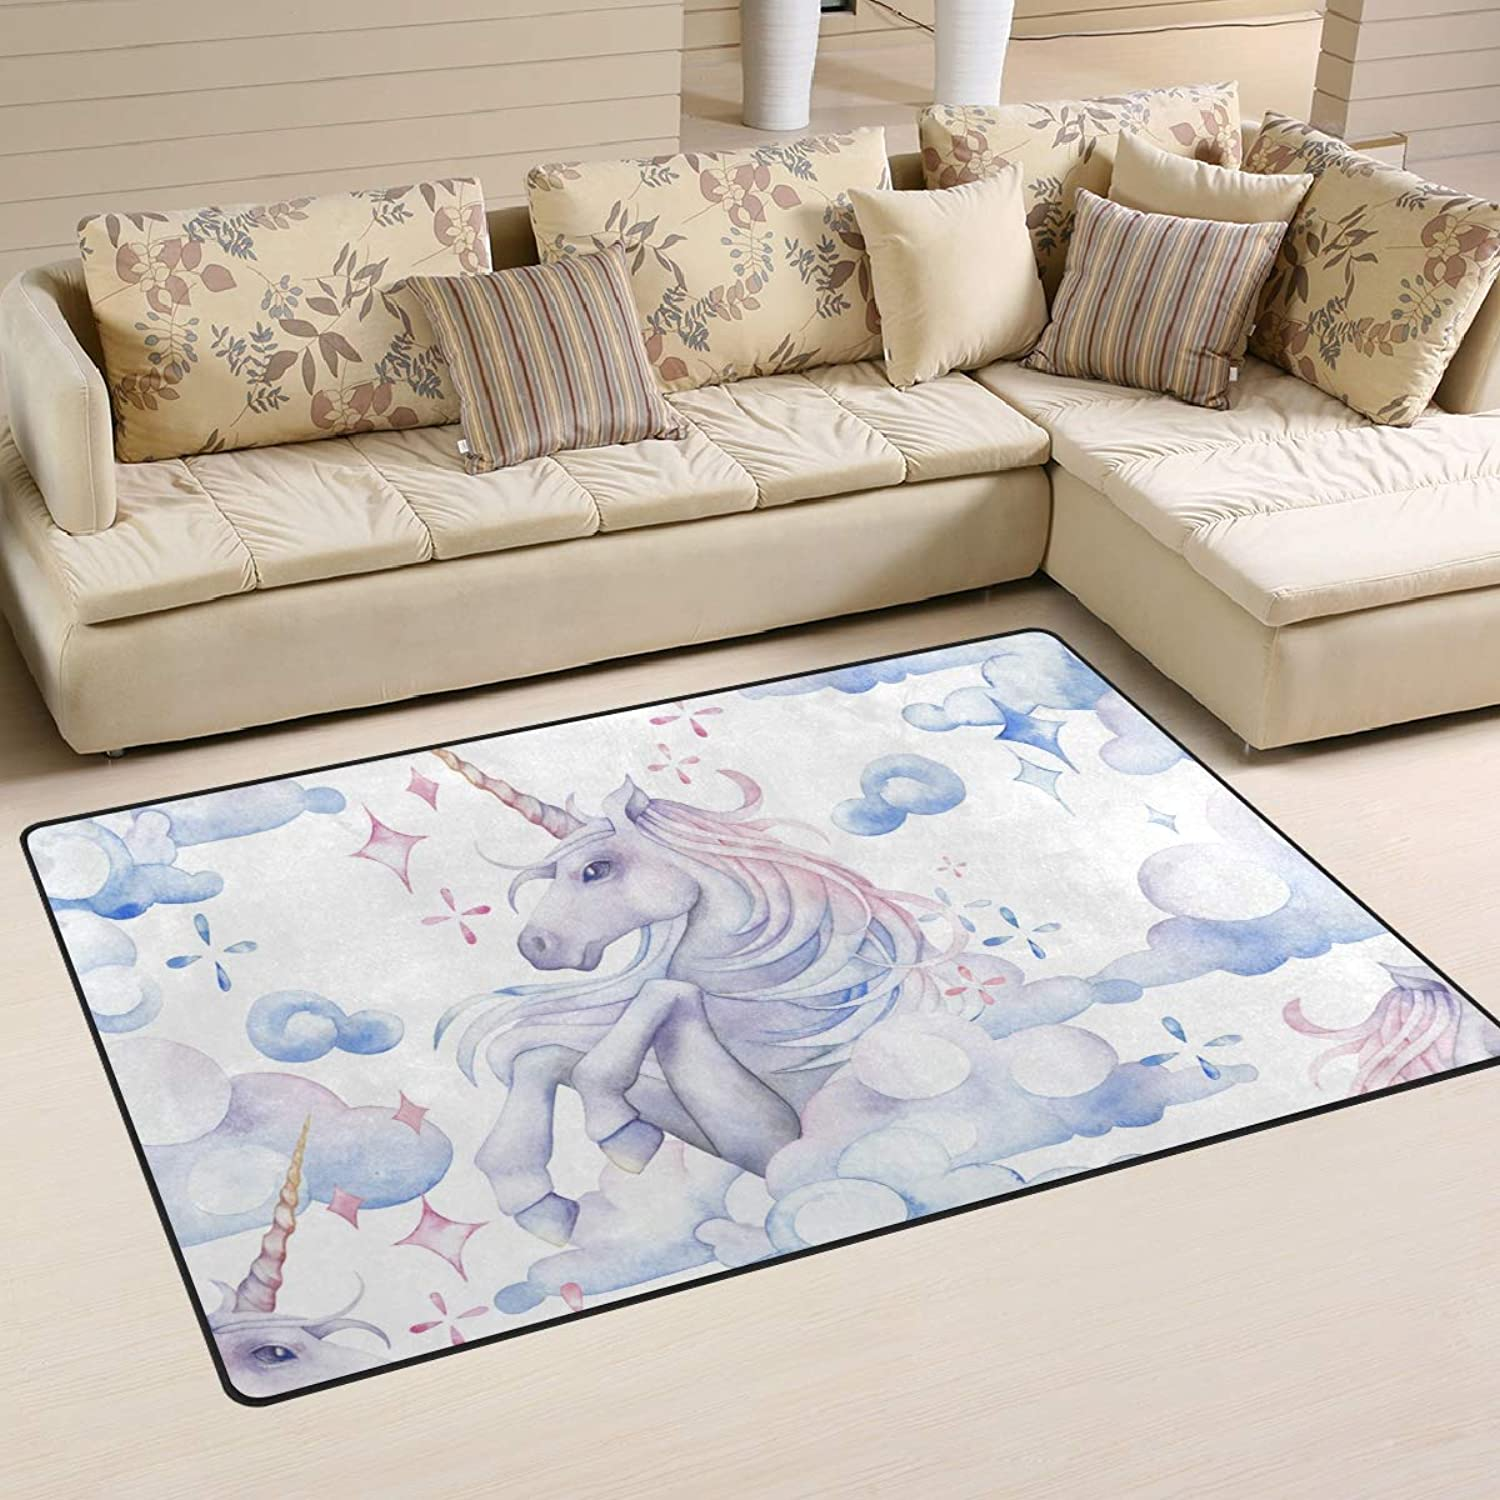 Area Rugs Carpet Doormats 60x39 inches Mythology Unicorn Horse for Living Room Bedroom Decorative Non-Slip Floor Mat